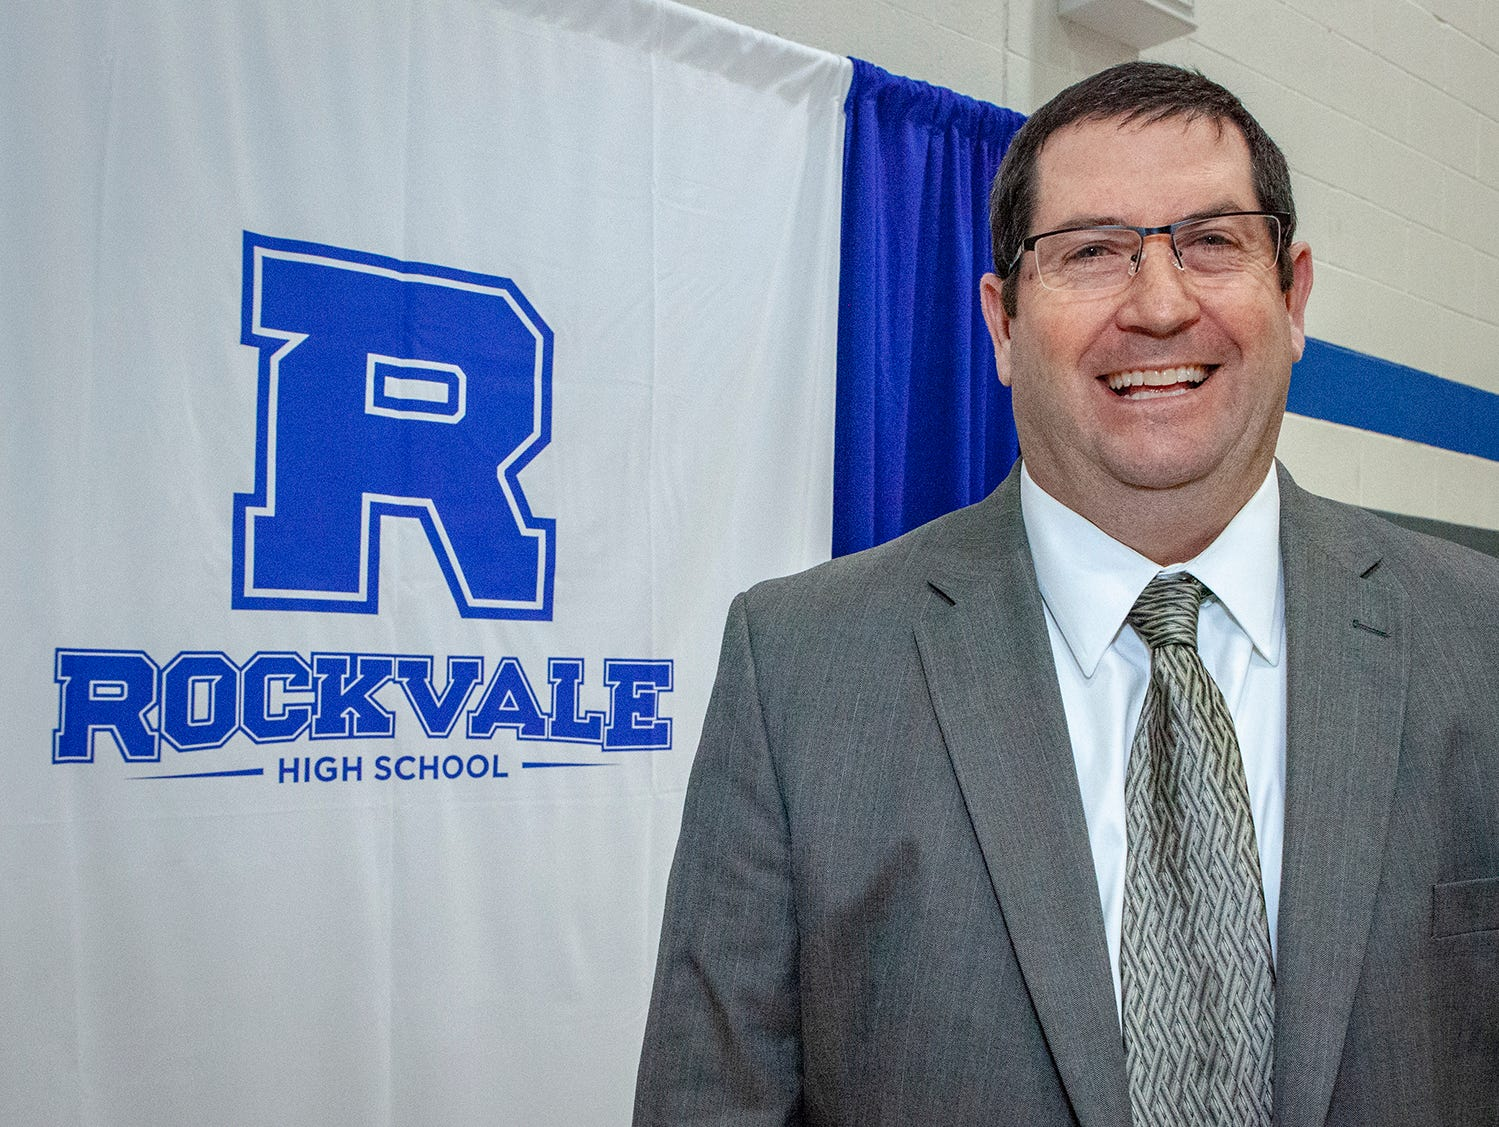 Steve Luker is the first principal at Rockvale High School, which opens fall 2019.